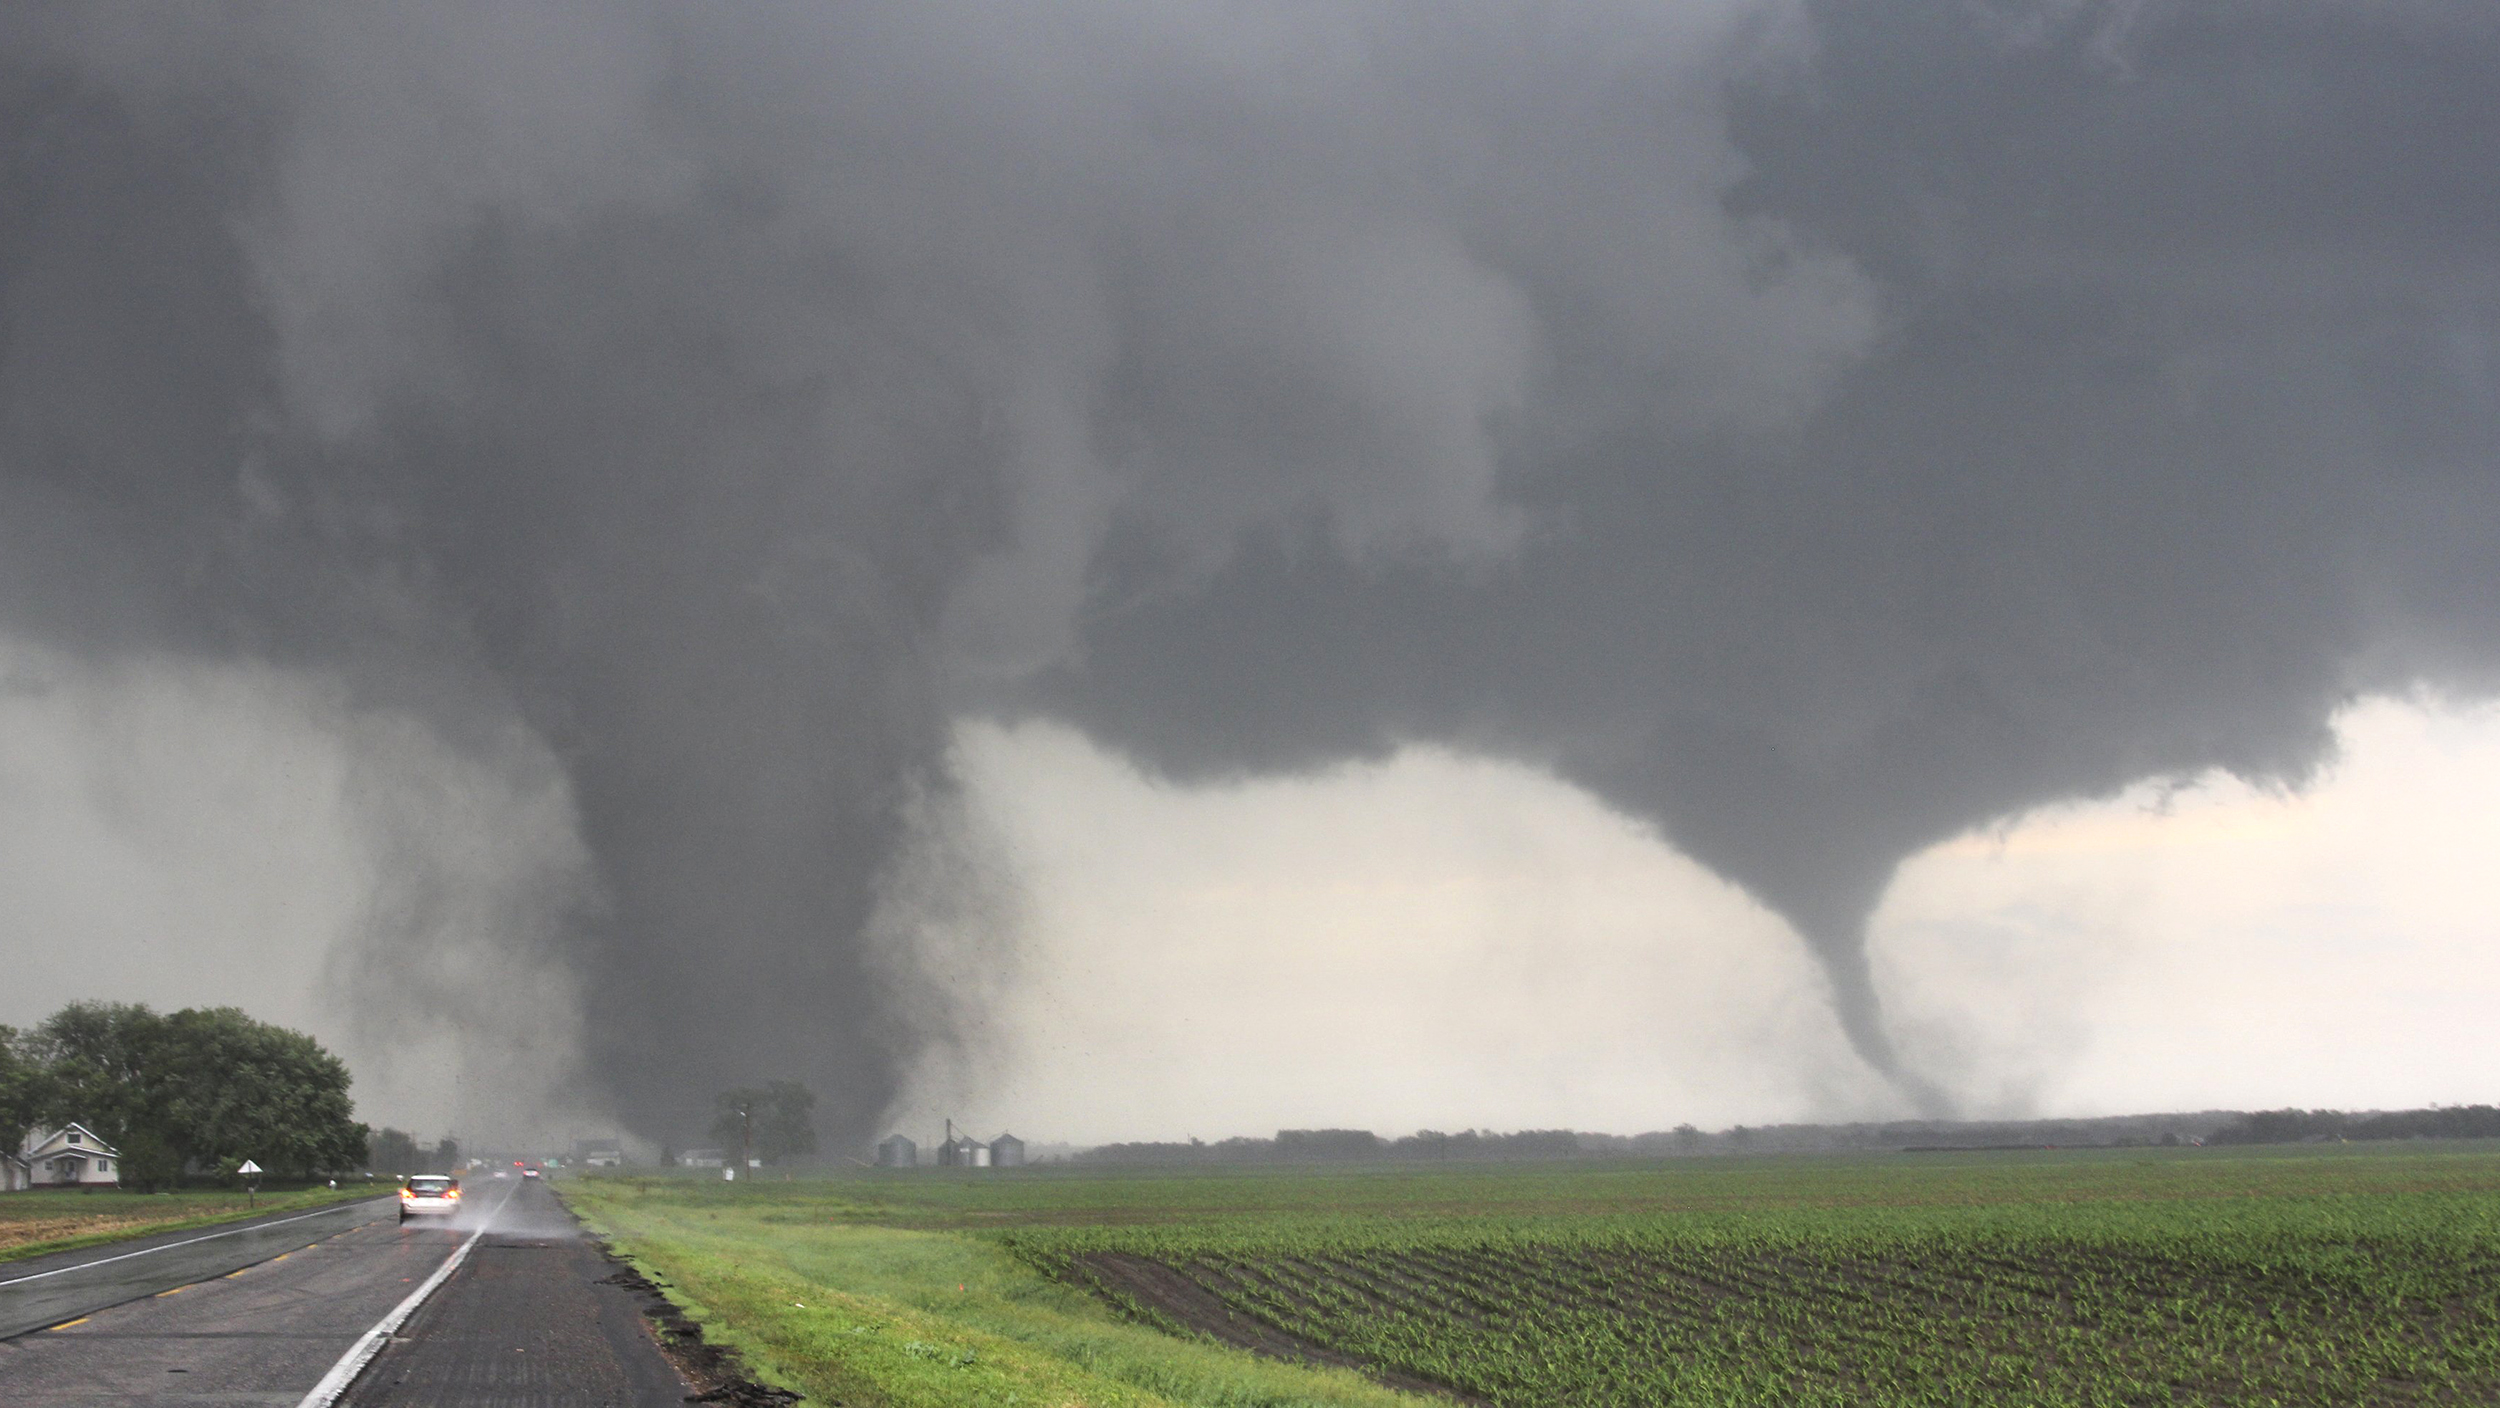 http://media1.s-nbcnews.com/i/streams/2014/June/140617/1D274906143116-today-nebraska-tornadoes-140617-02.jpg